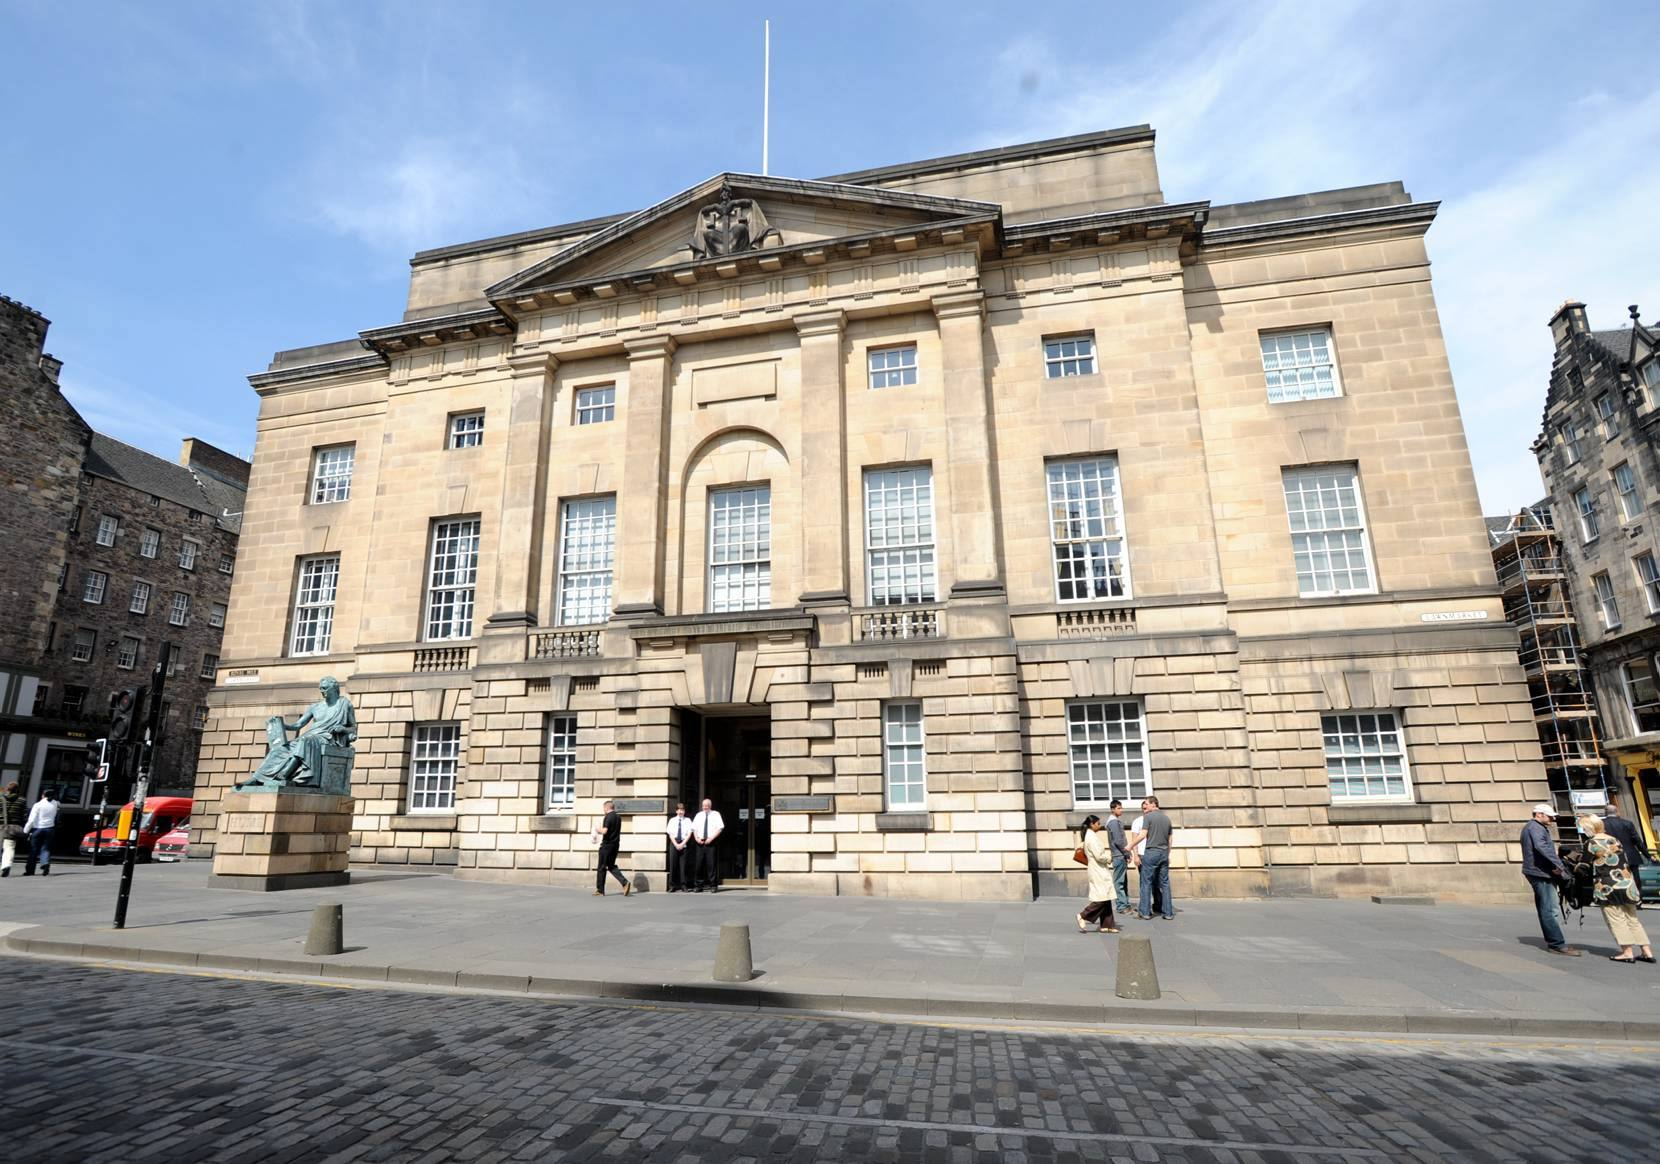 The case was heard at the High Court in Edinburgh